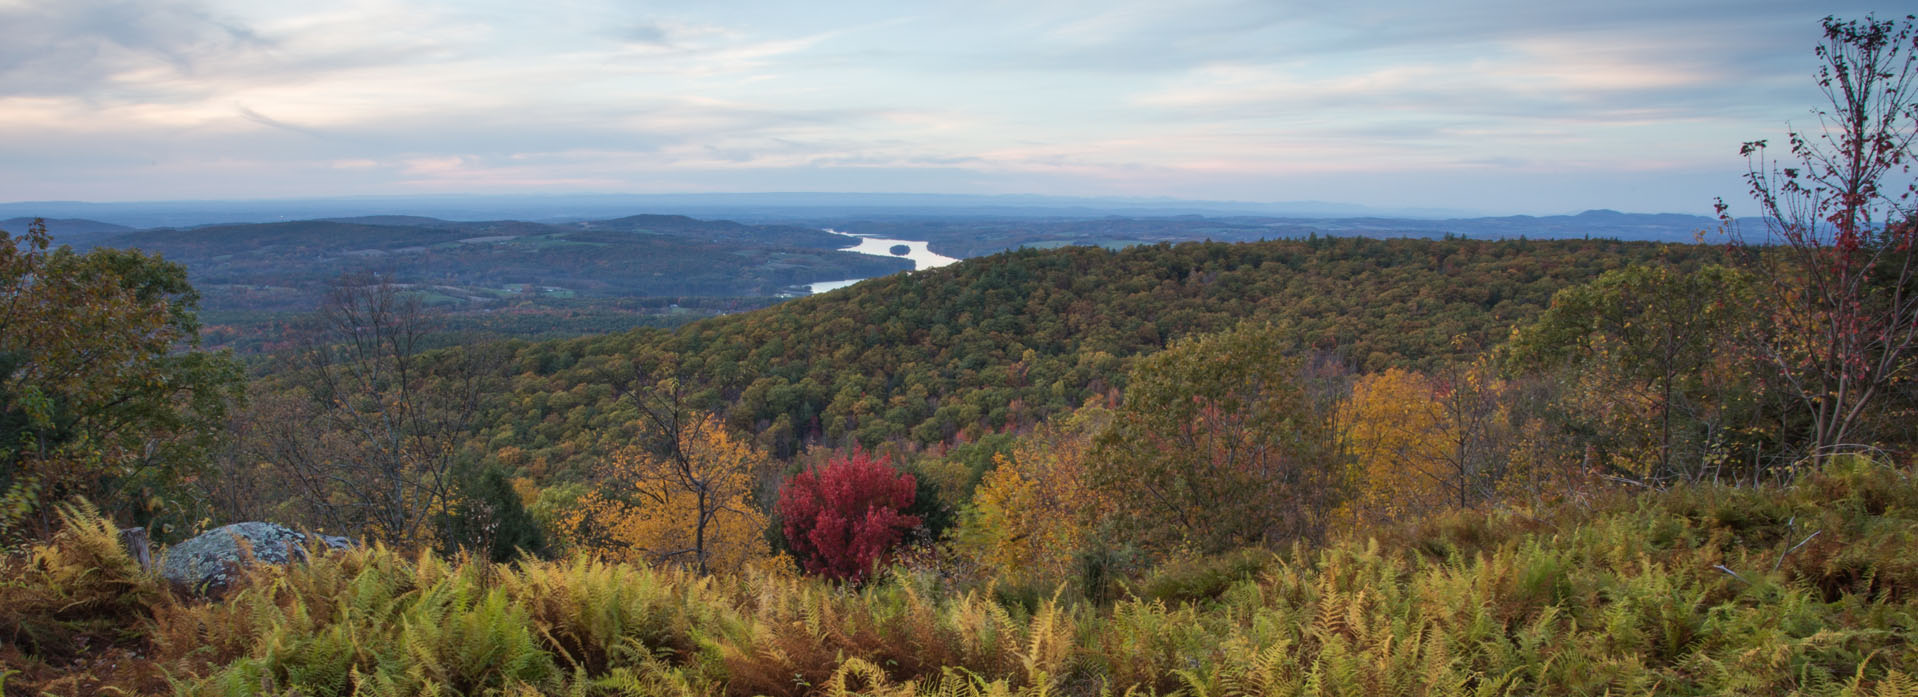 View of the Tomhannock Reservoir from the Rensselaer Plateau across the watershed sm